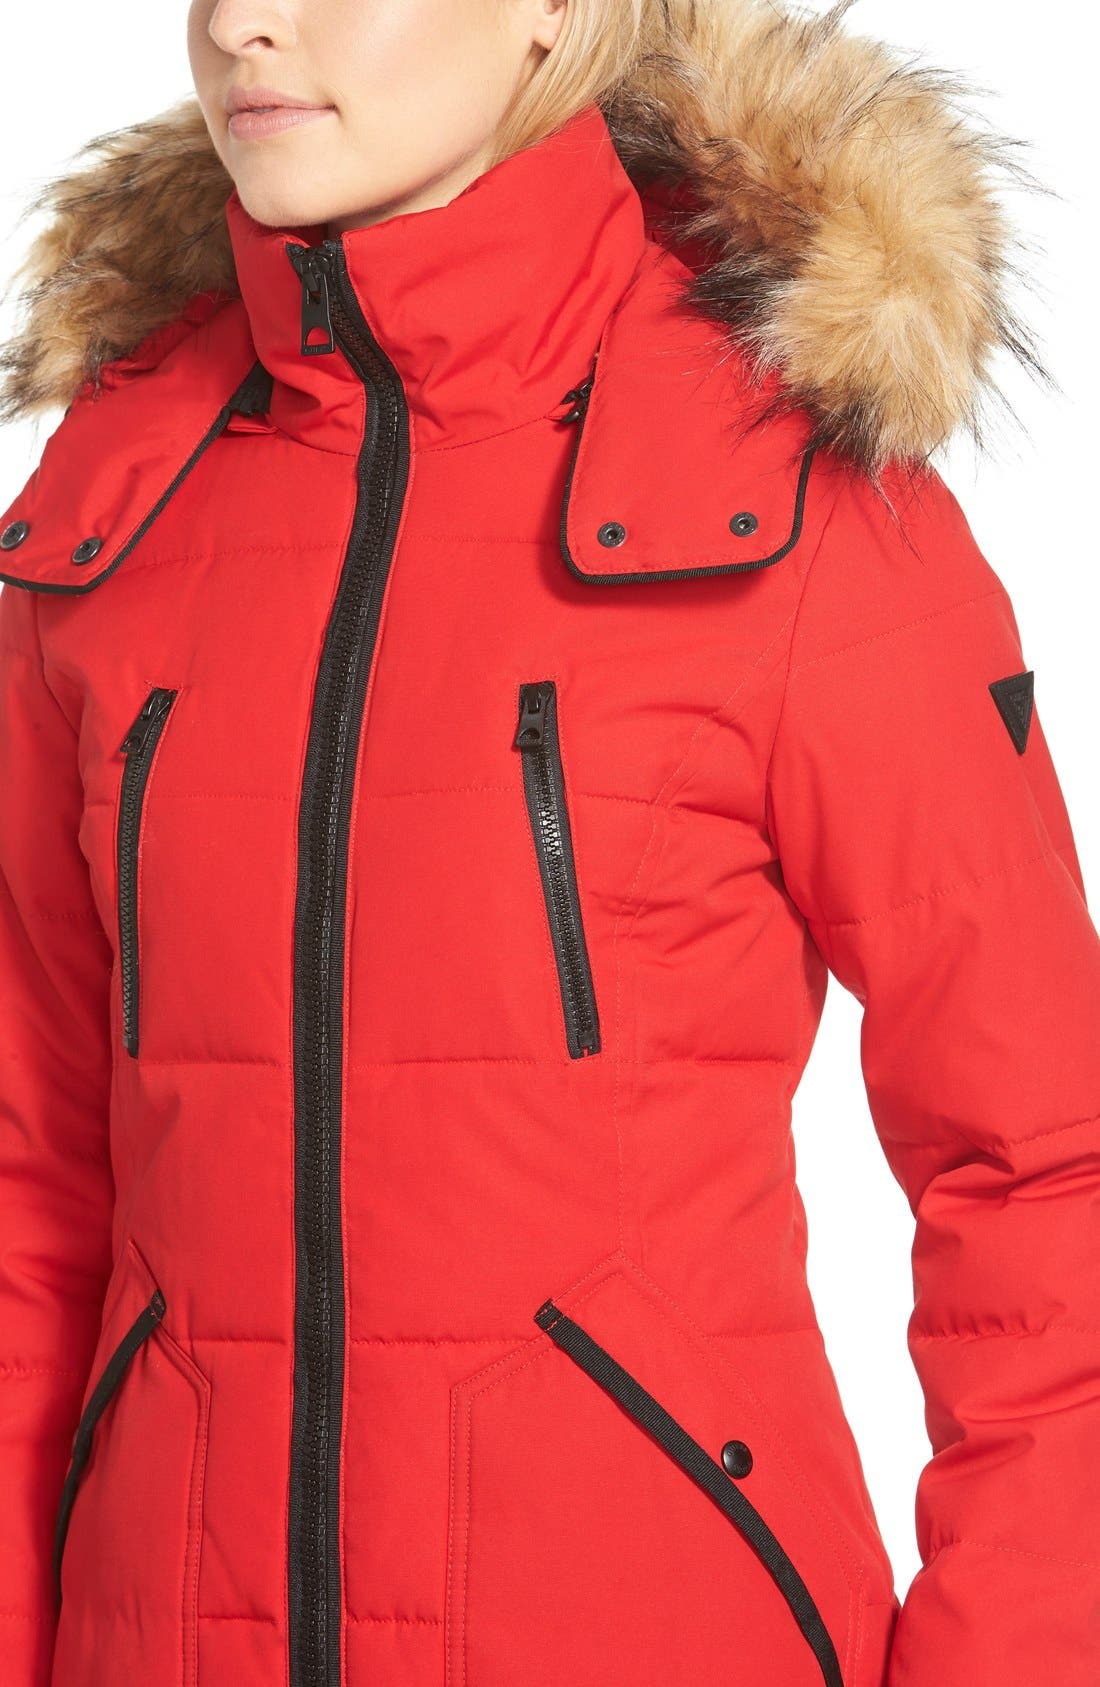 'Expedition' Quilted Parka with Faux Fur Trim,                             Alternate thumbnail 5, color,                             648